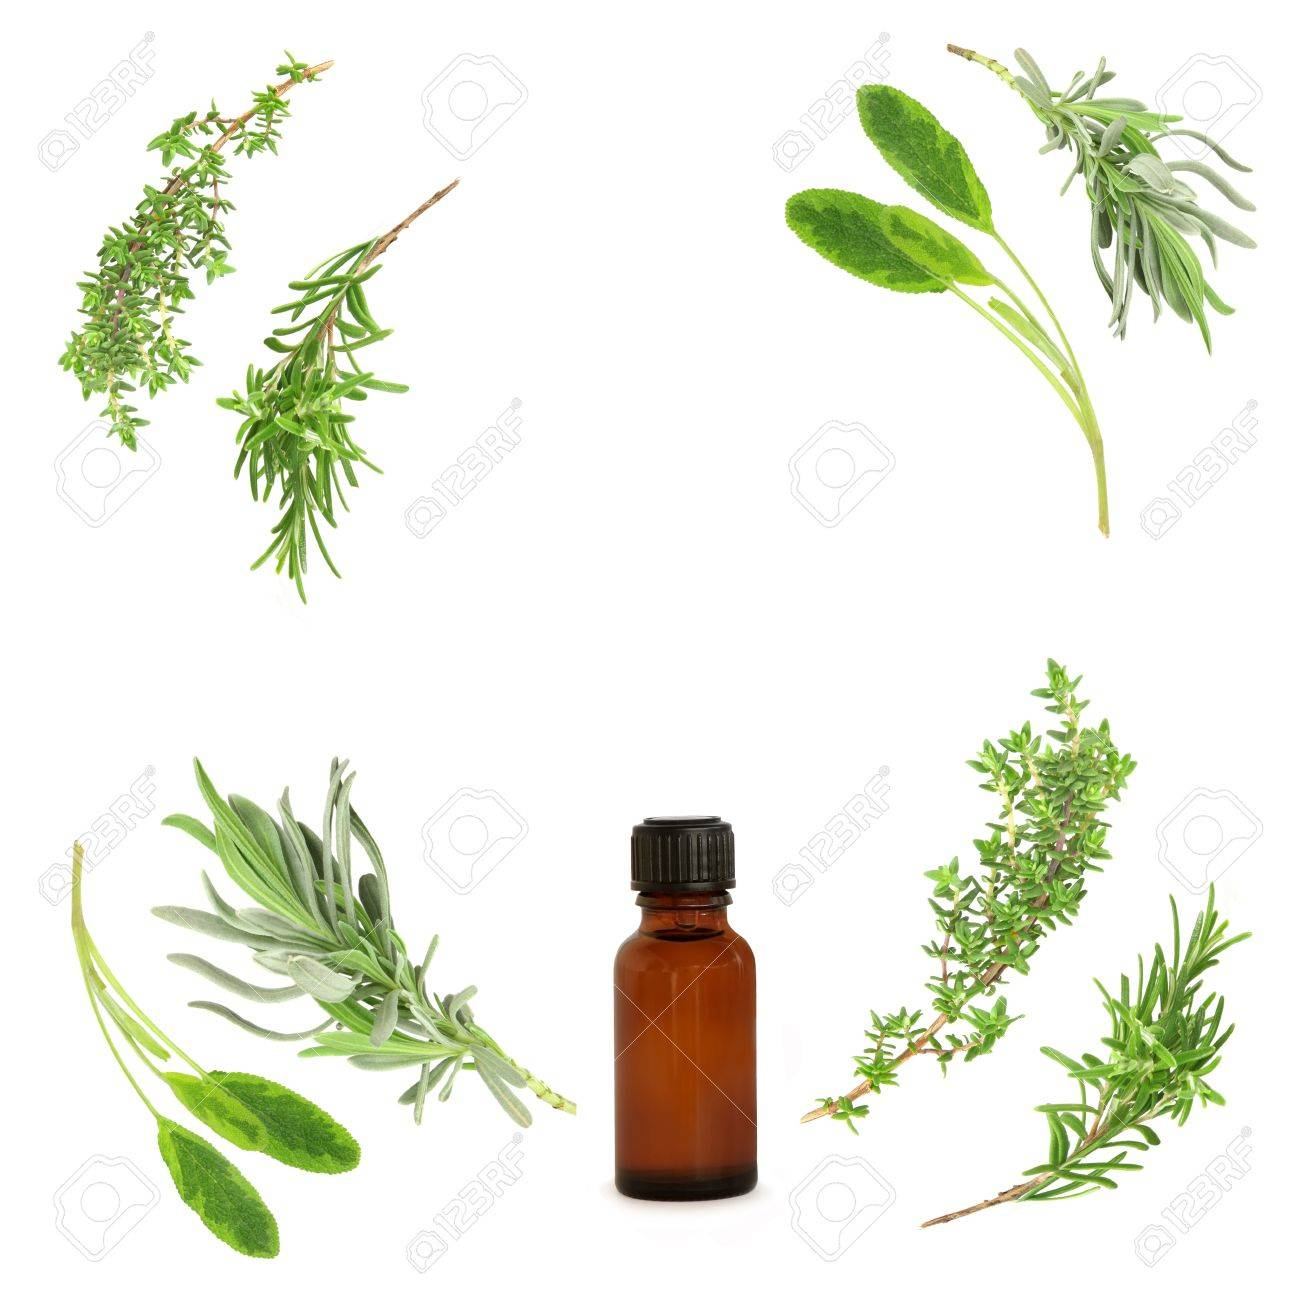 Lavender, sage, rosemary and thyme herbs leaf sprigs in abstract circular design, with aromatherapy  essential oil bottle. Over white background. Stock Photo - 3974563